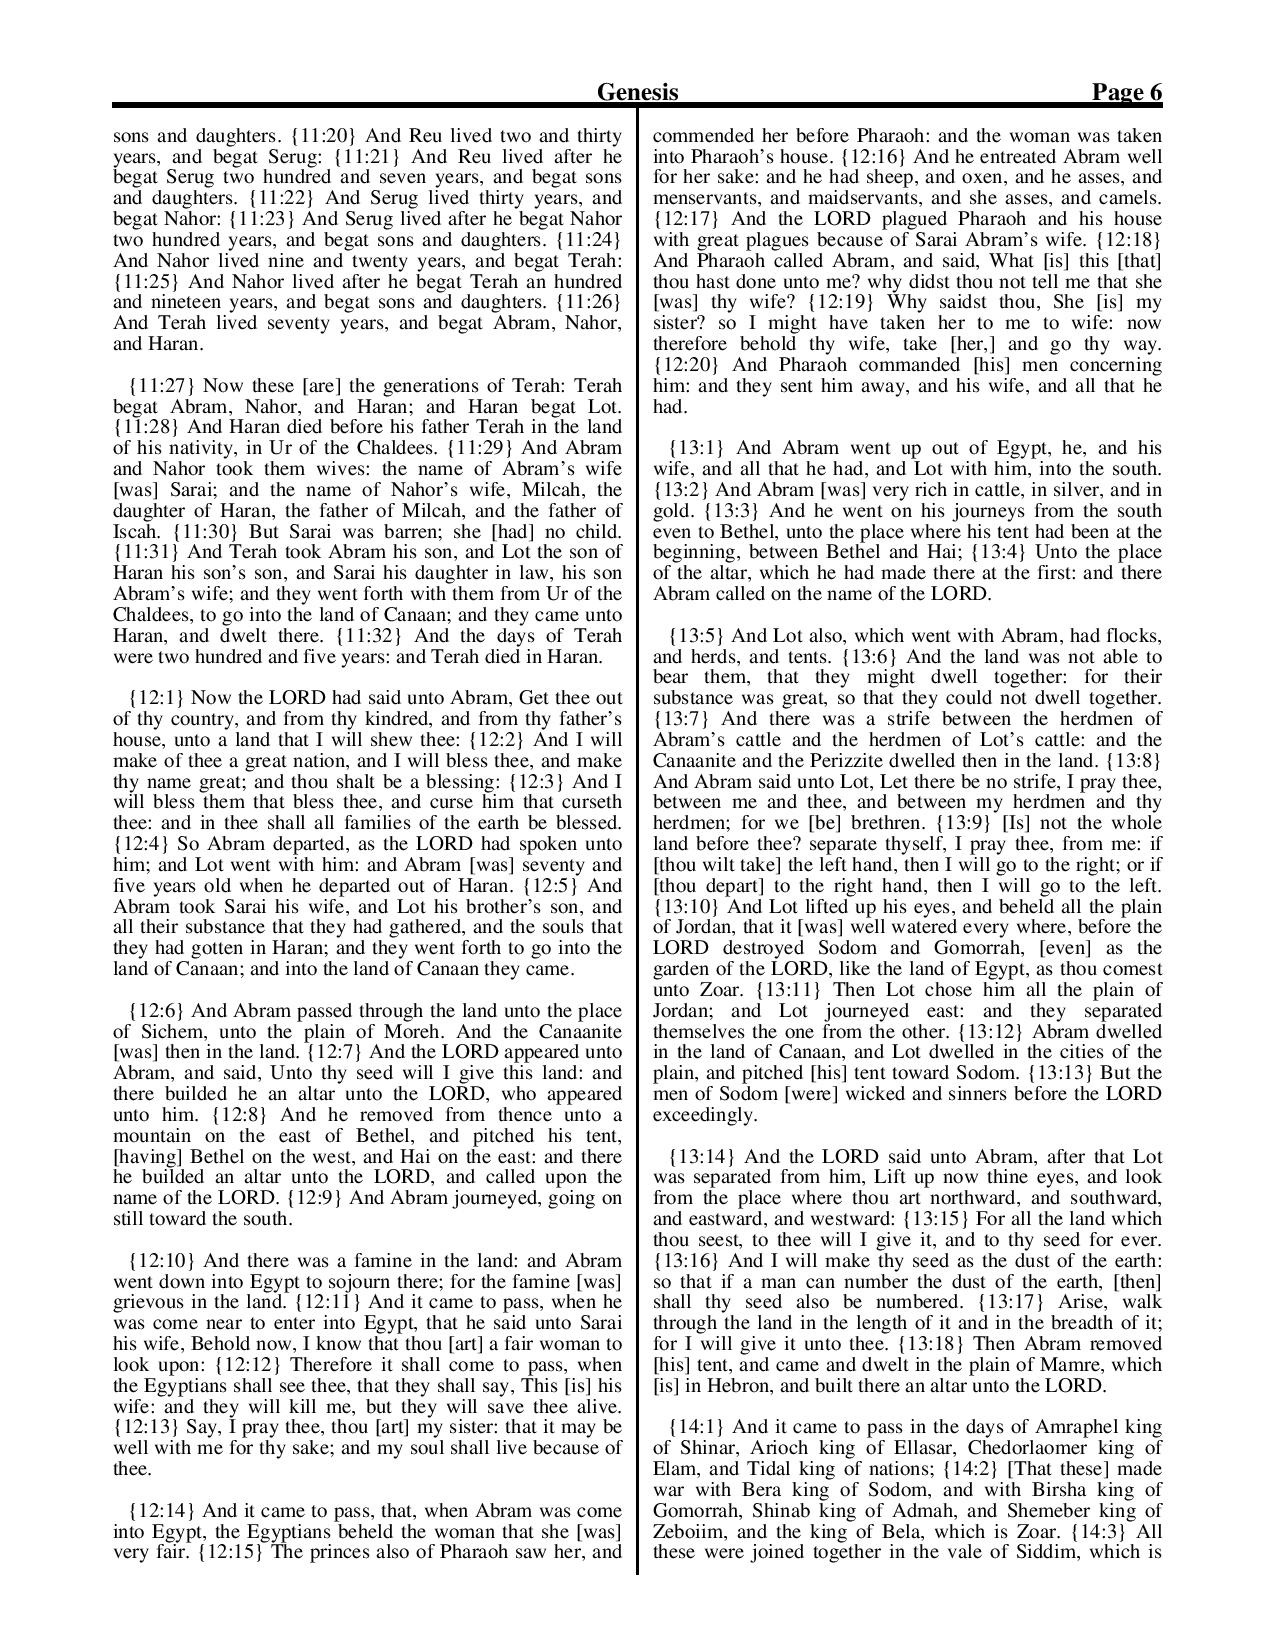 King-James-Bible-KJV-Bible-PDF-page-027